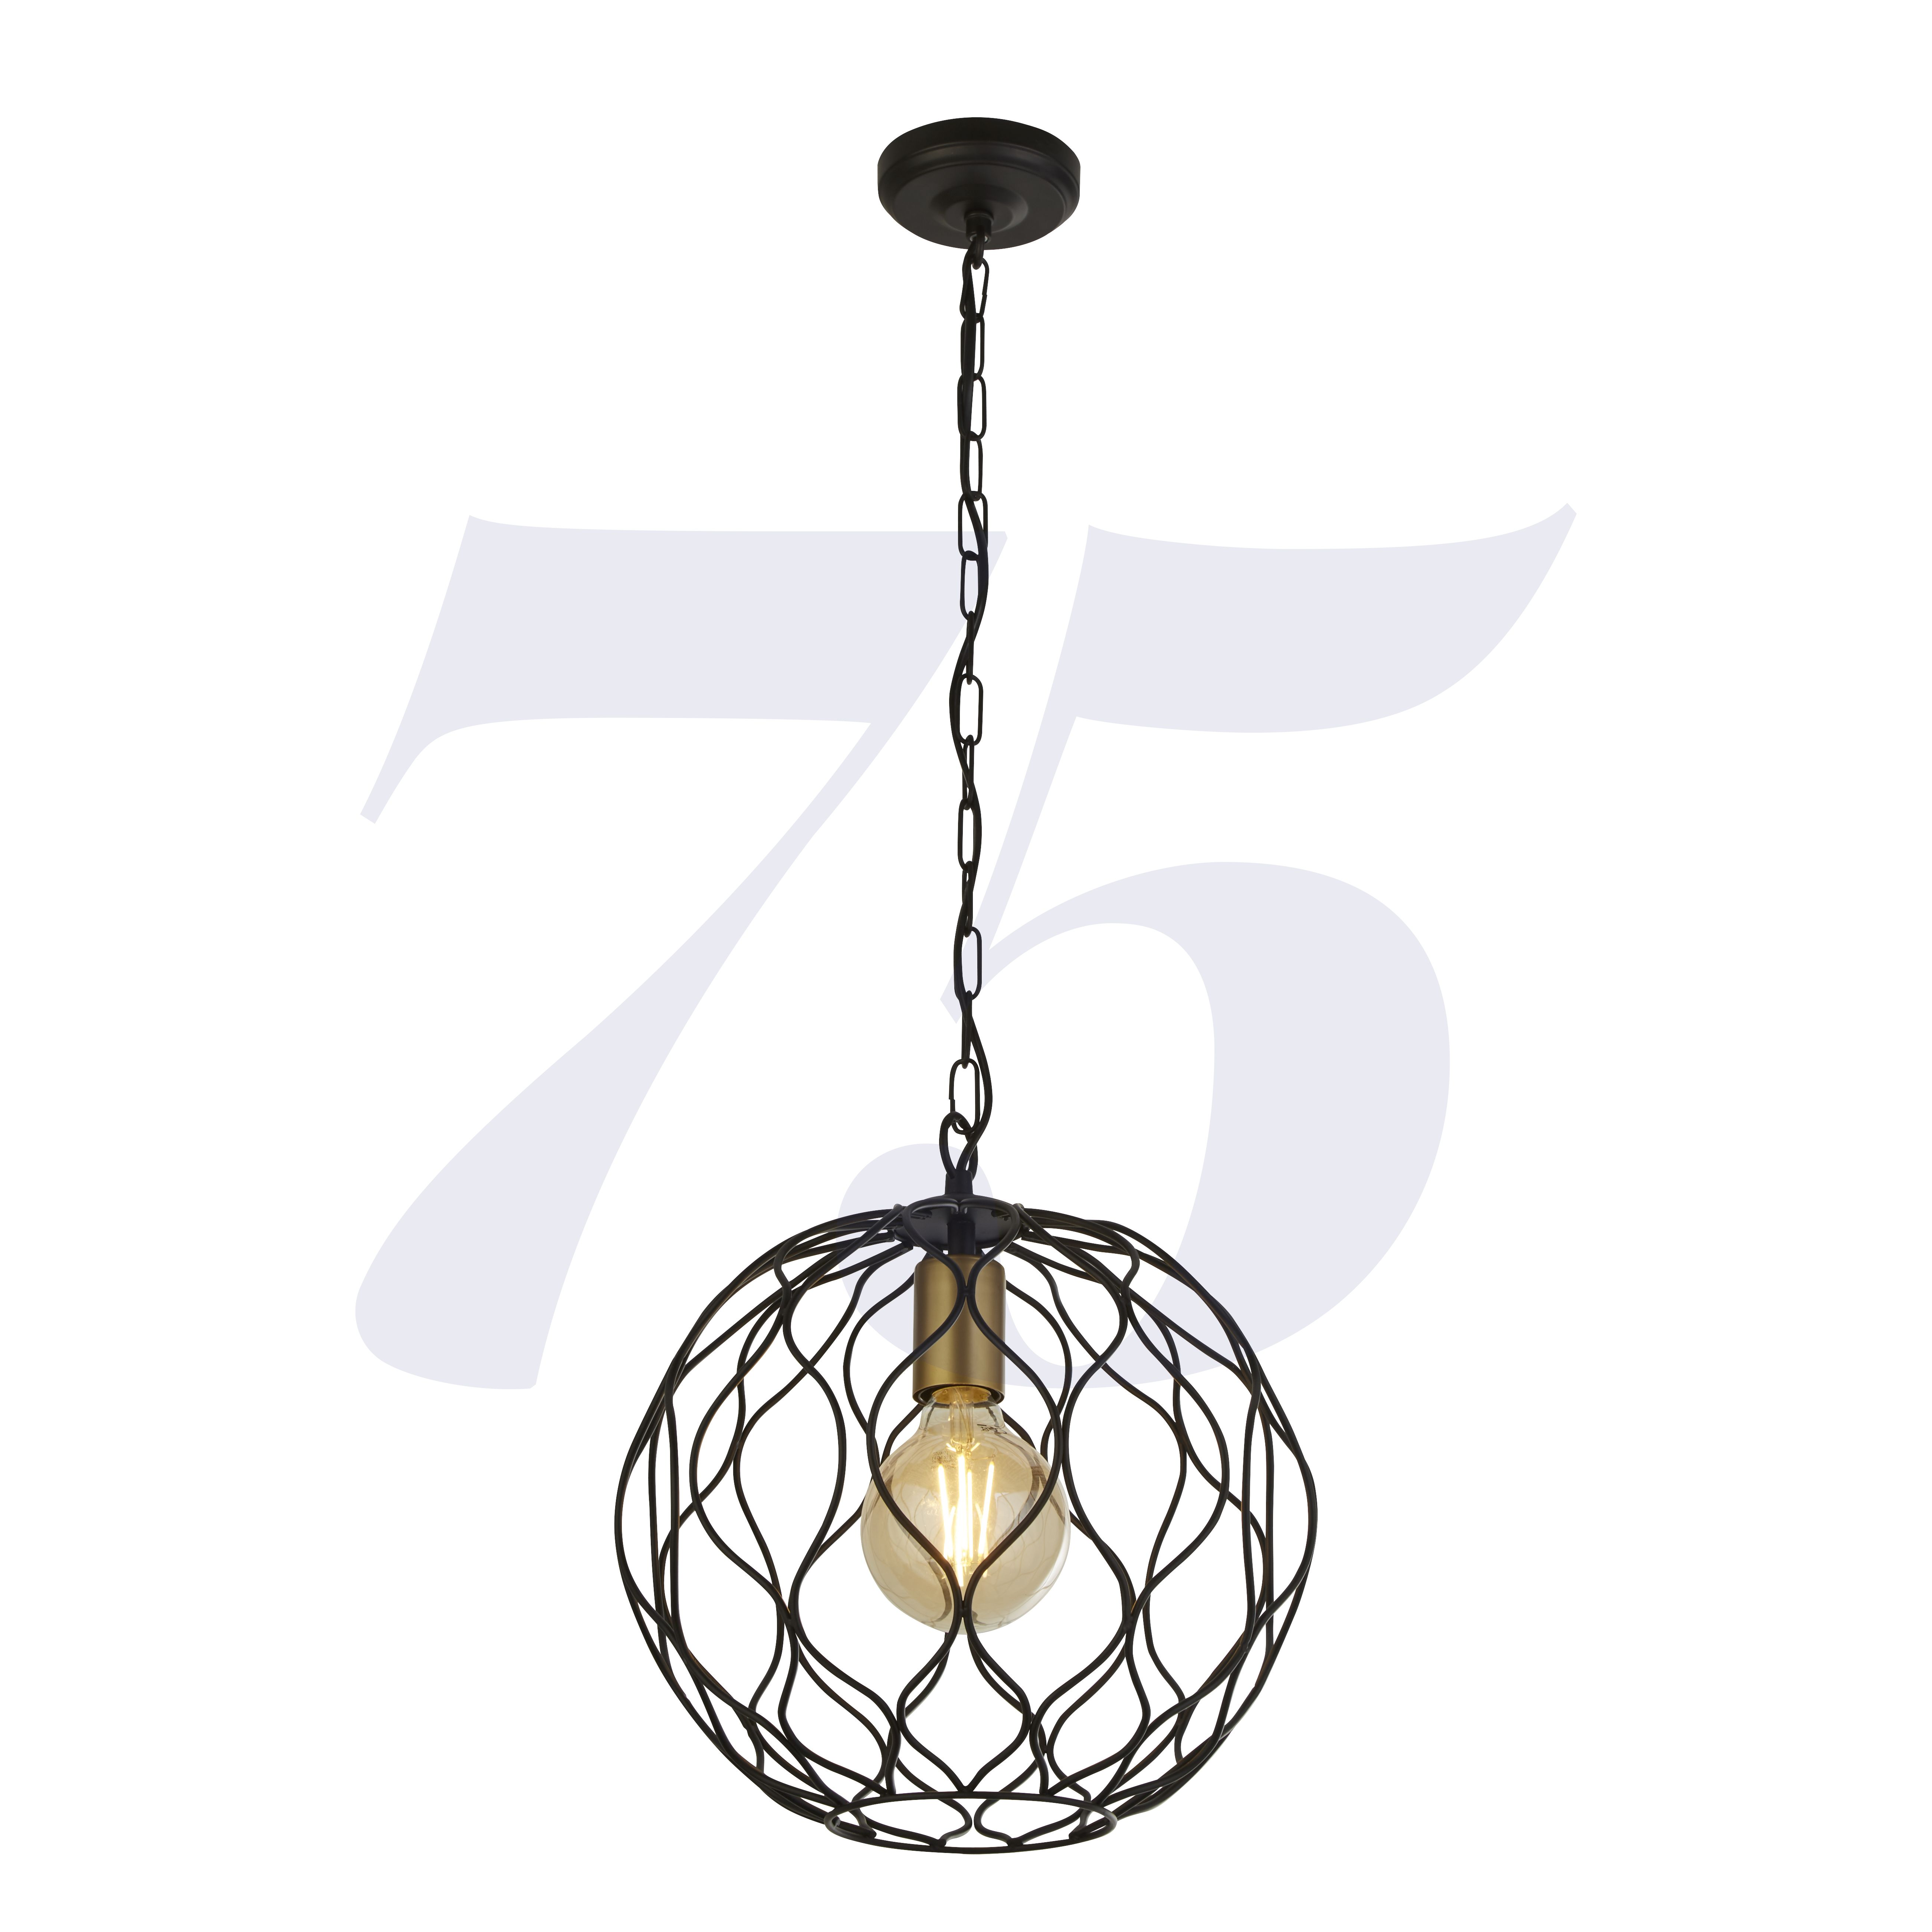 Finesse 1lt Round Pendant With Wavey Bar Detail - Black With Gold Pendant